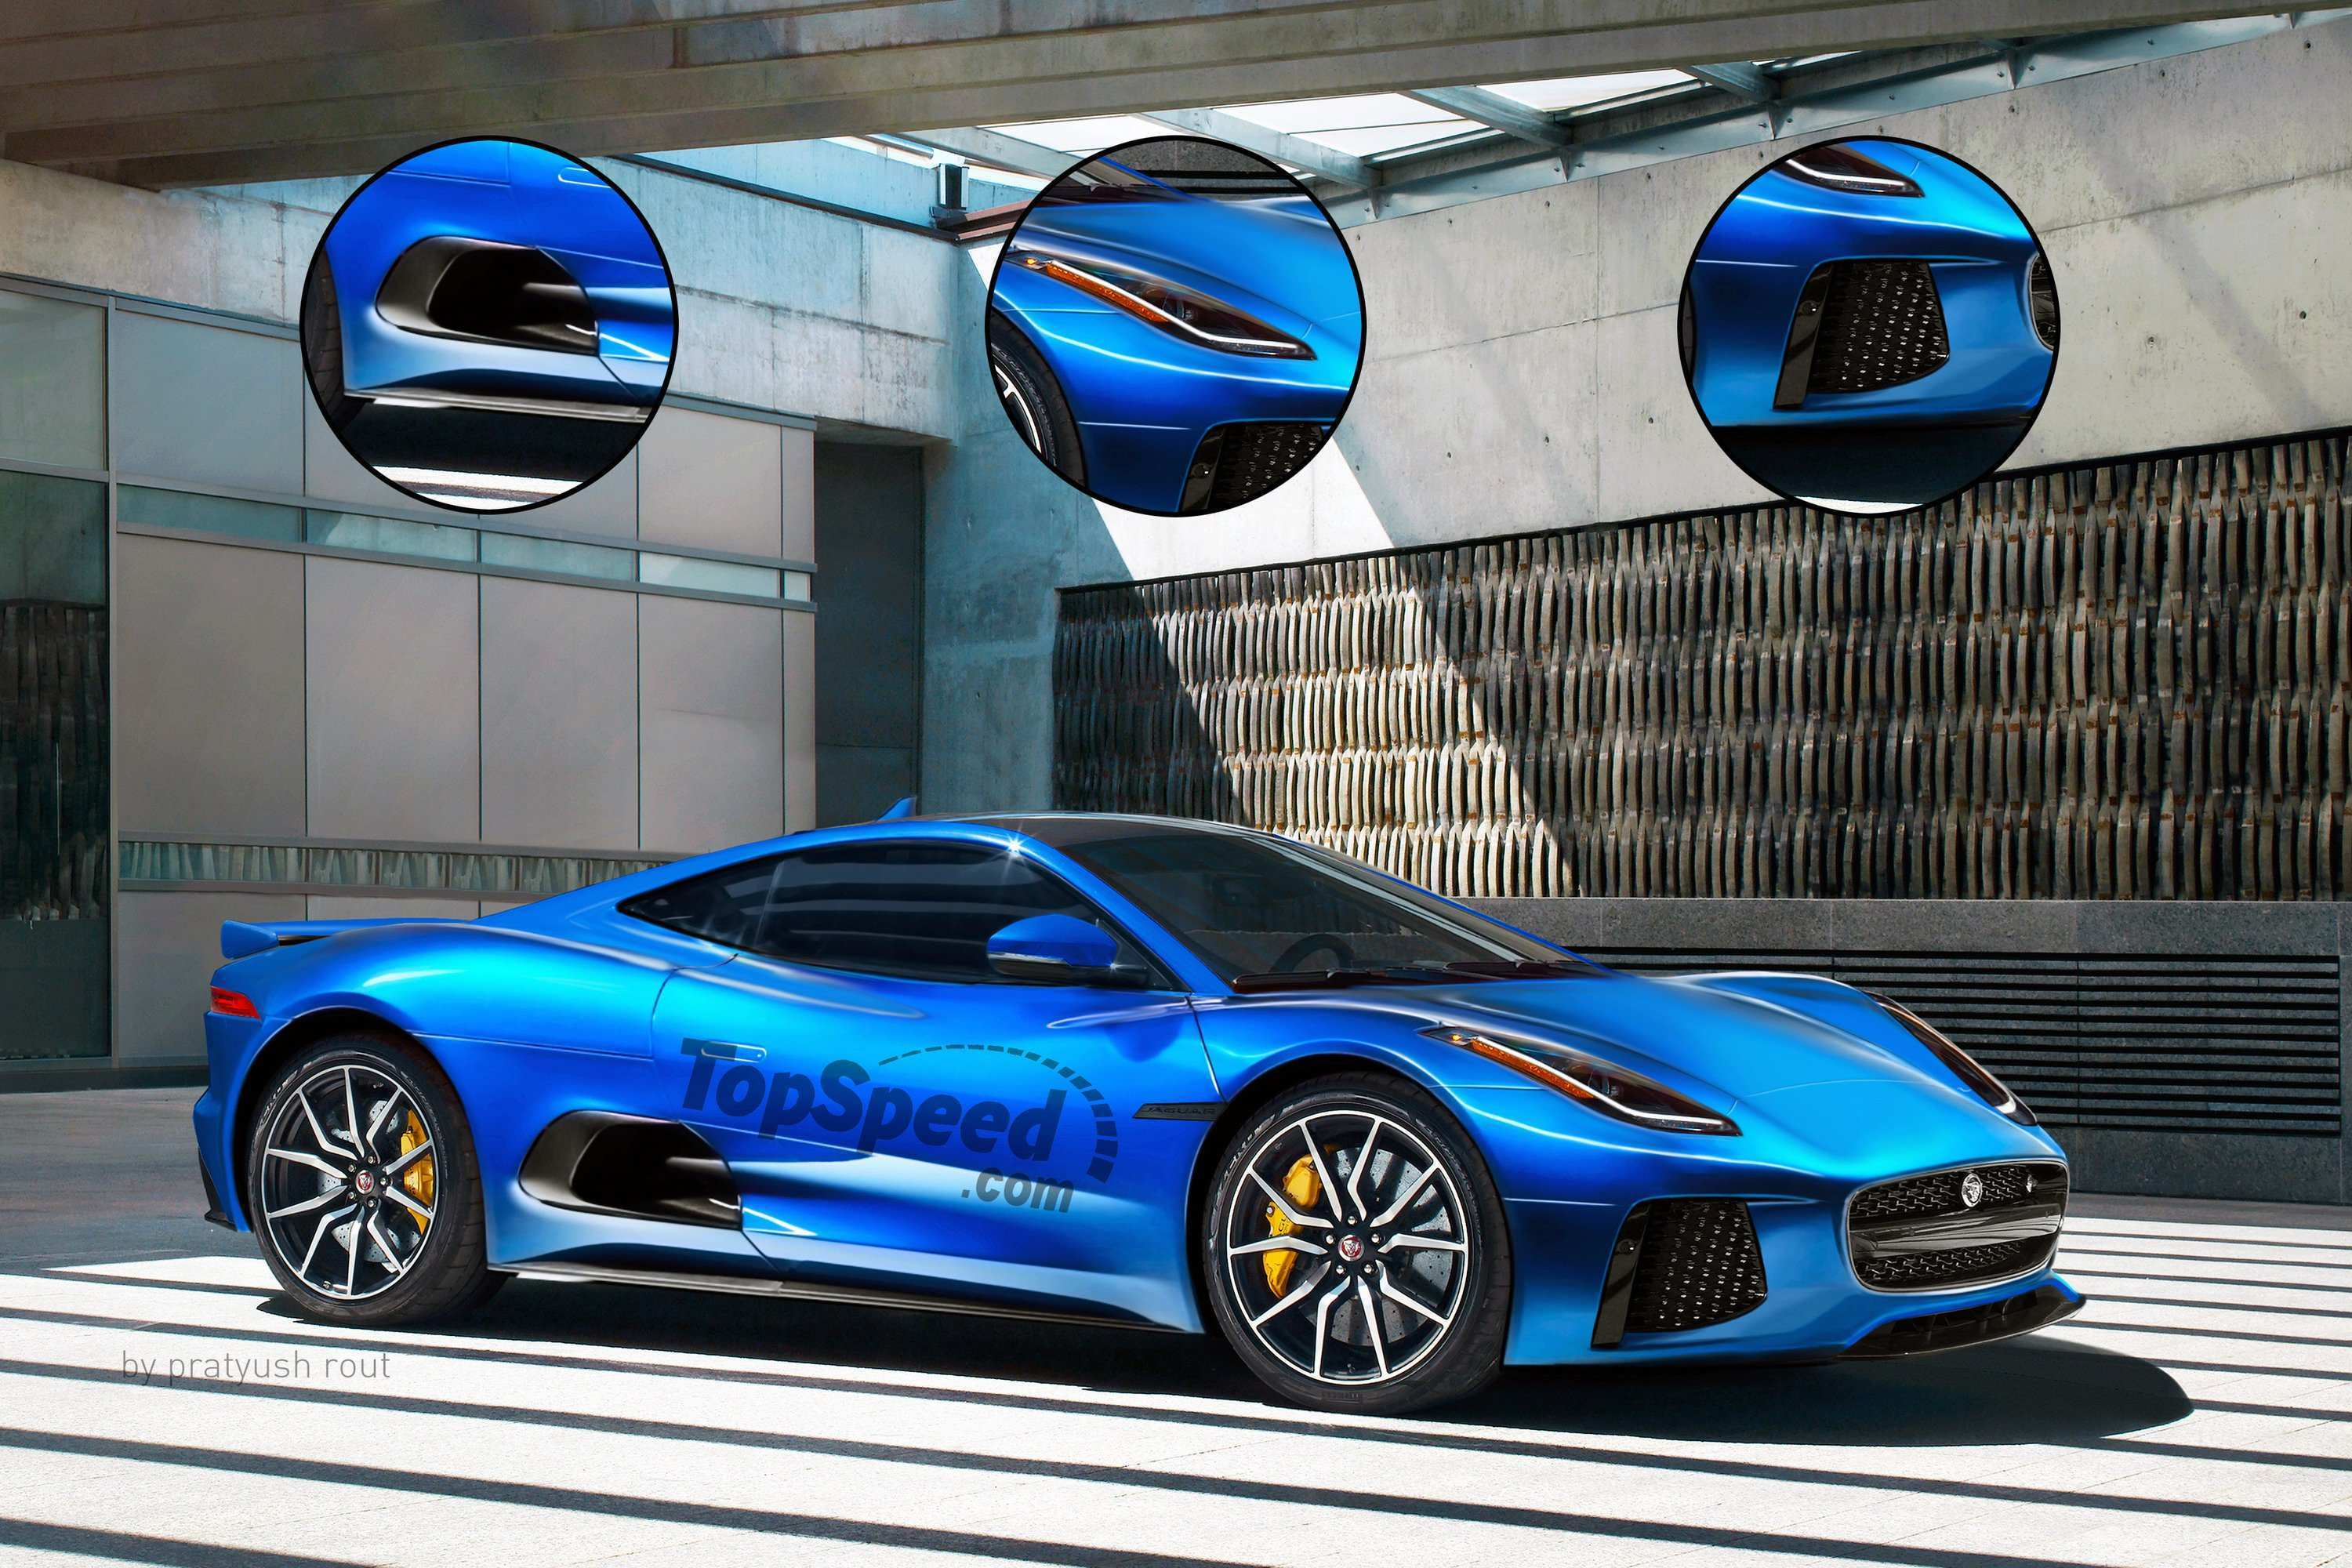 13 Concept of 2020 Jaguar F Type Convertible Images for 2020 Jaguar F Type Convertible